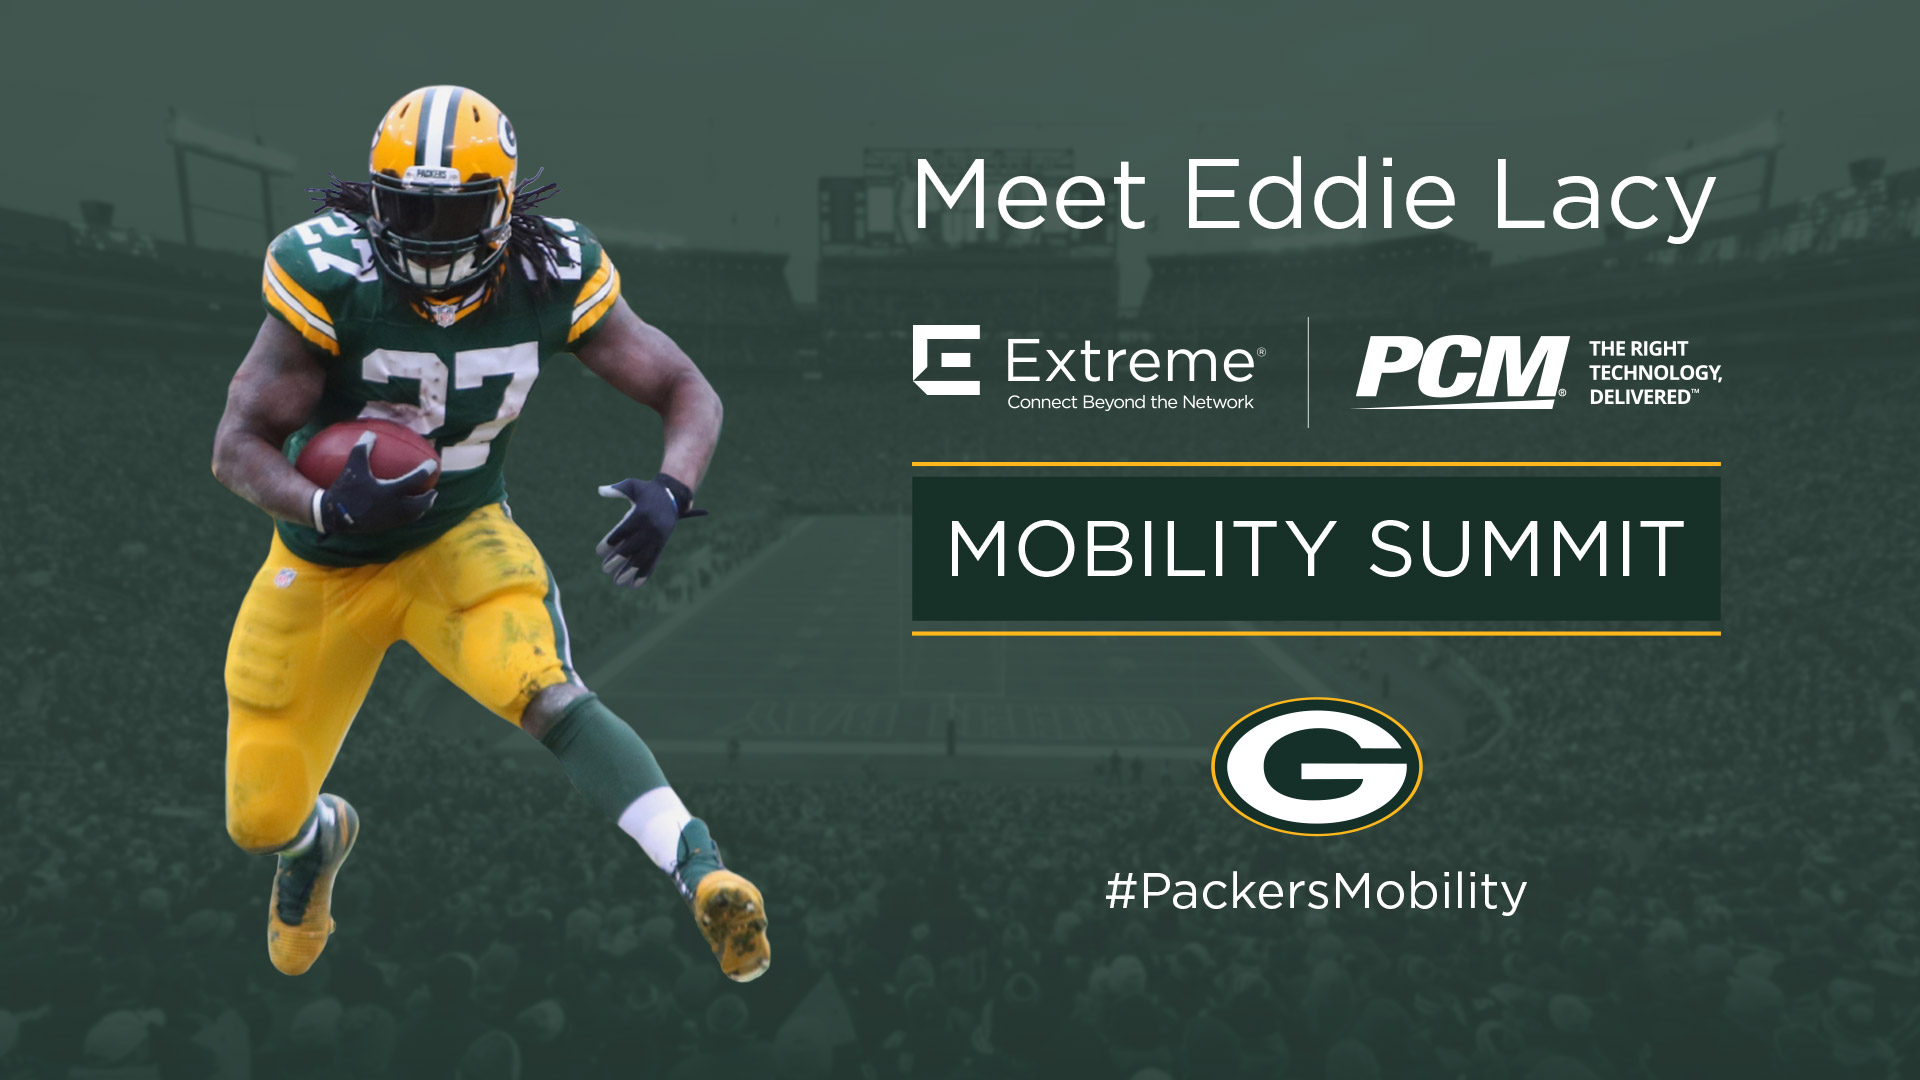 Packers-Mobility-Summit_Club-Monitor-Eddie-Lacy